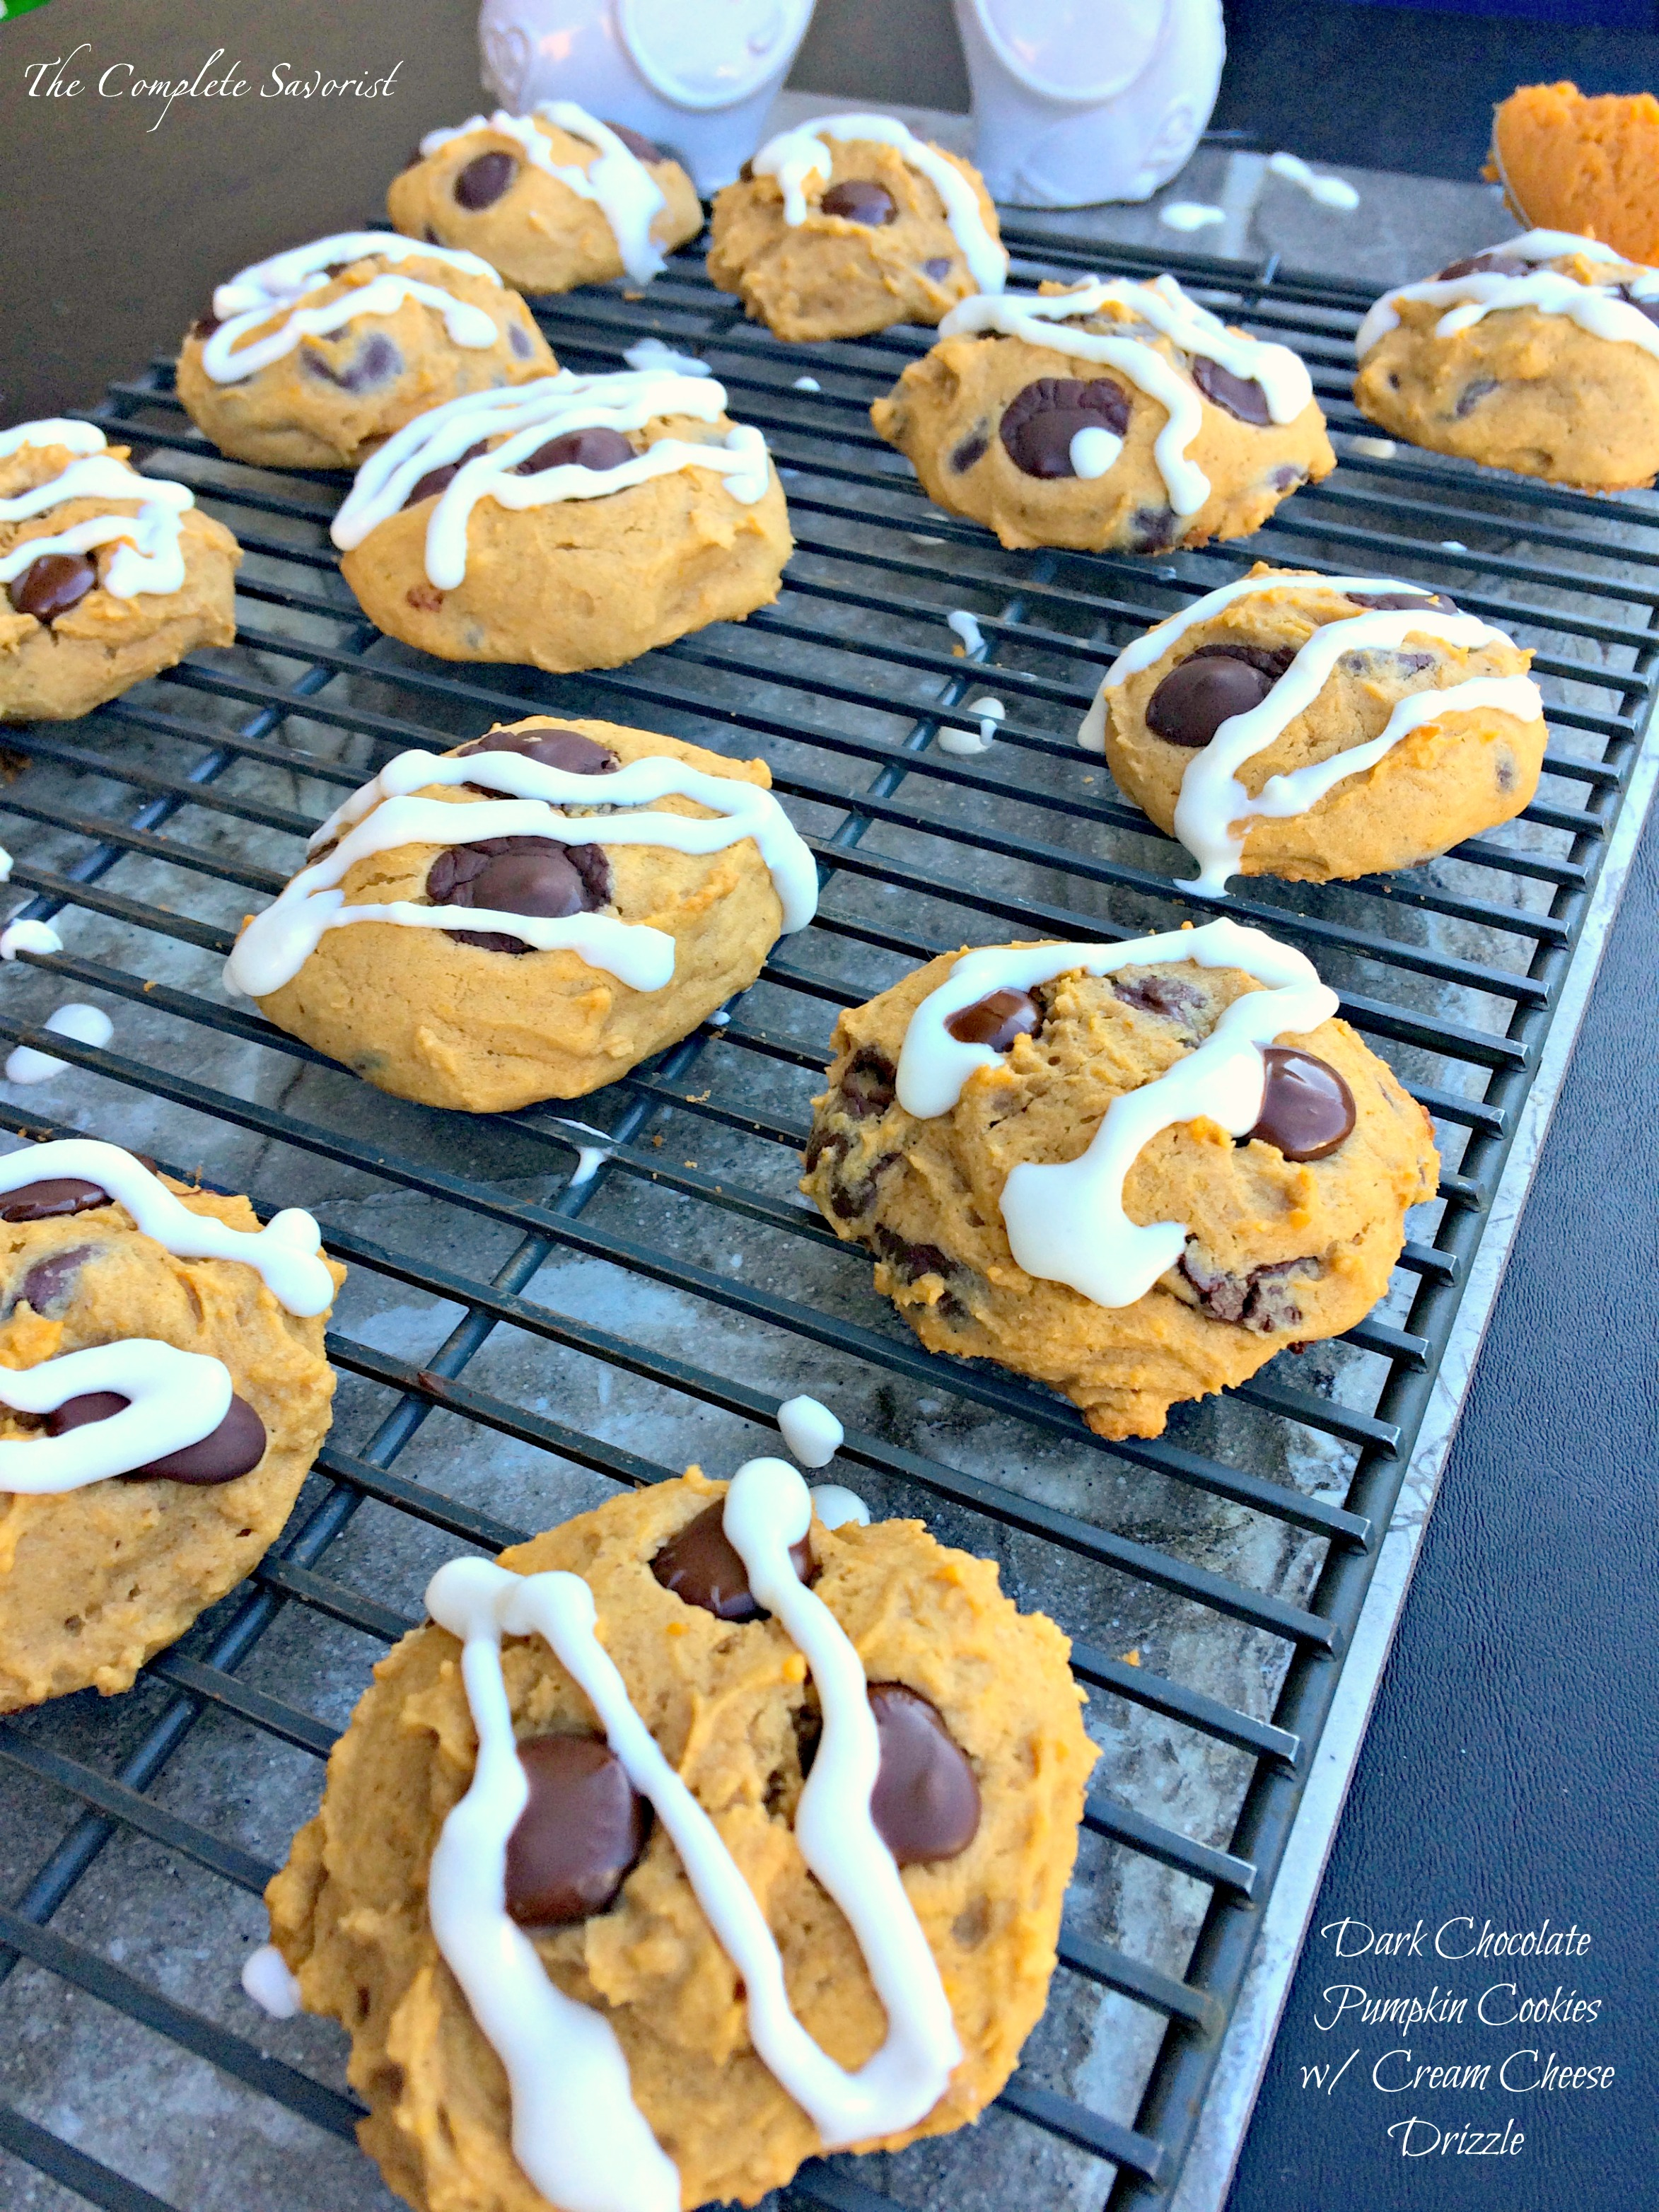 Dark Chocolate Chip Pumpkin Cookies with Cream Cheese Drizzle